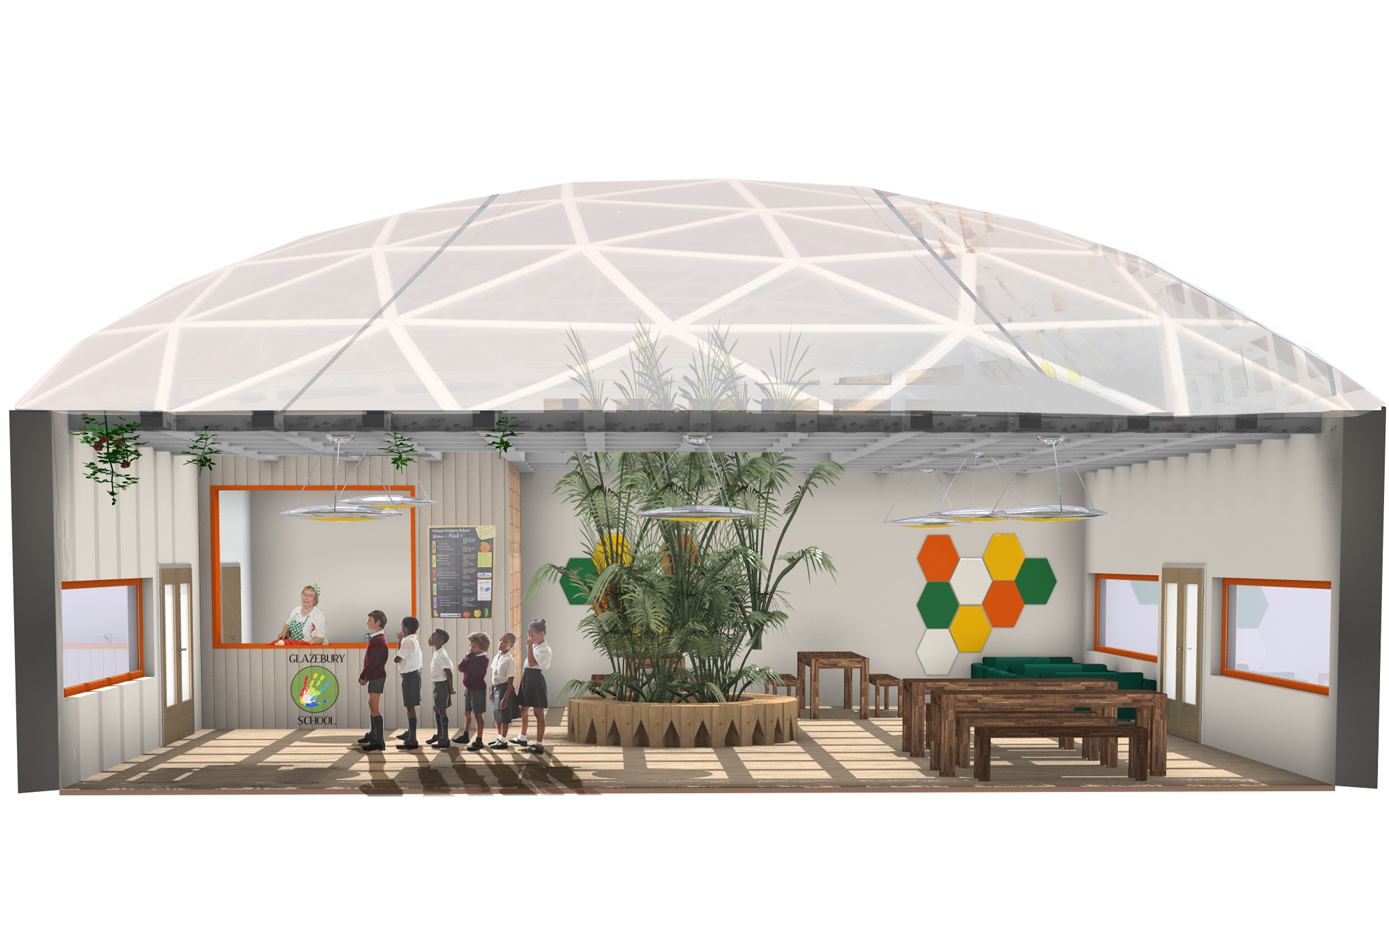 Redesigning Special Educational Needs Schools focusing on User Well Being (Dining Hall)